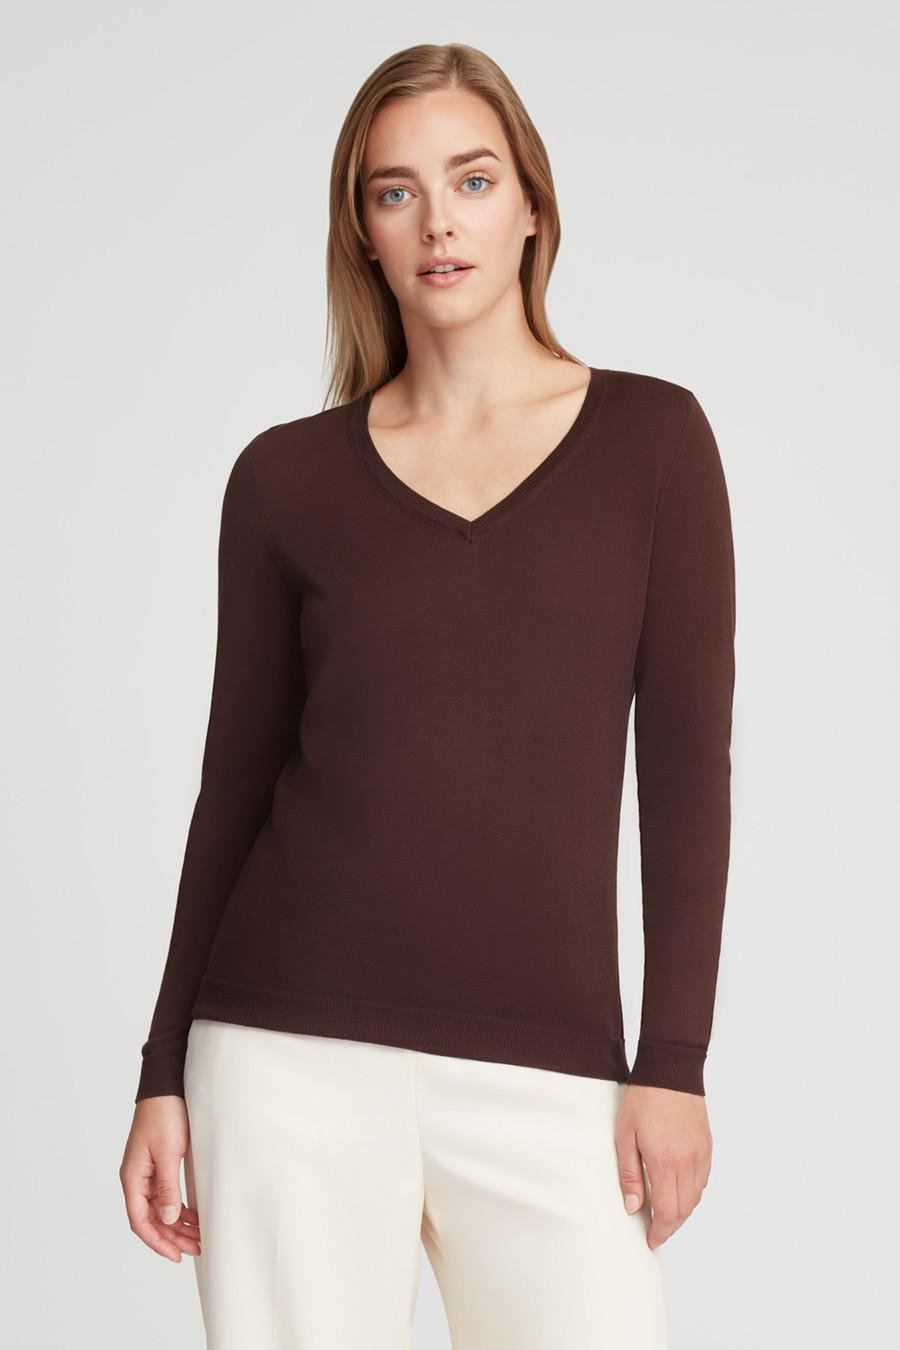 Women's Classic Cotton Cashmere V-Neck Sweater in Chocolate | Size: 1